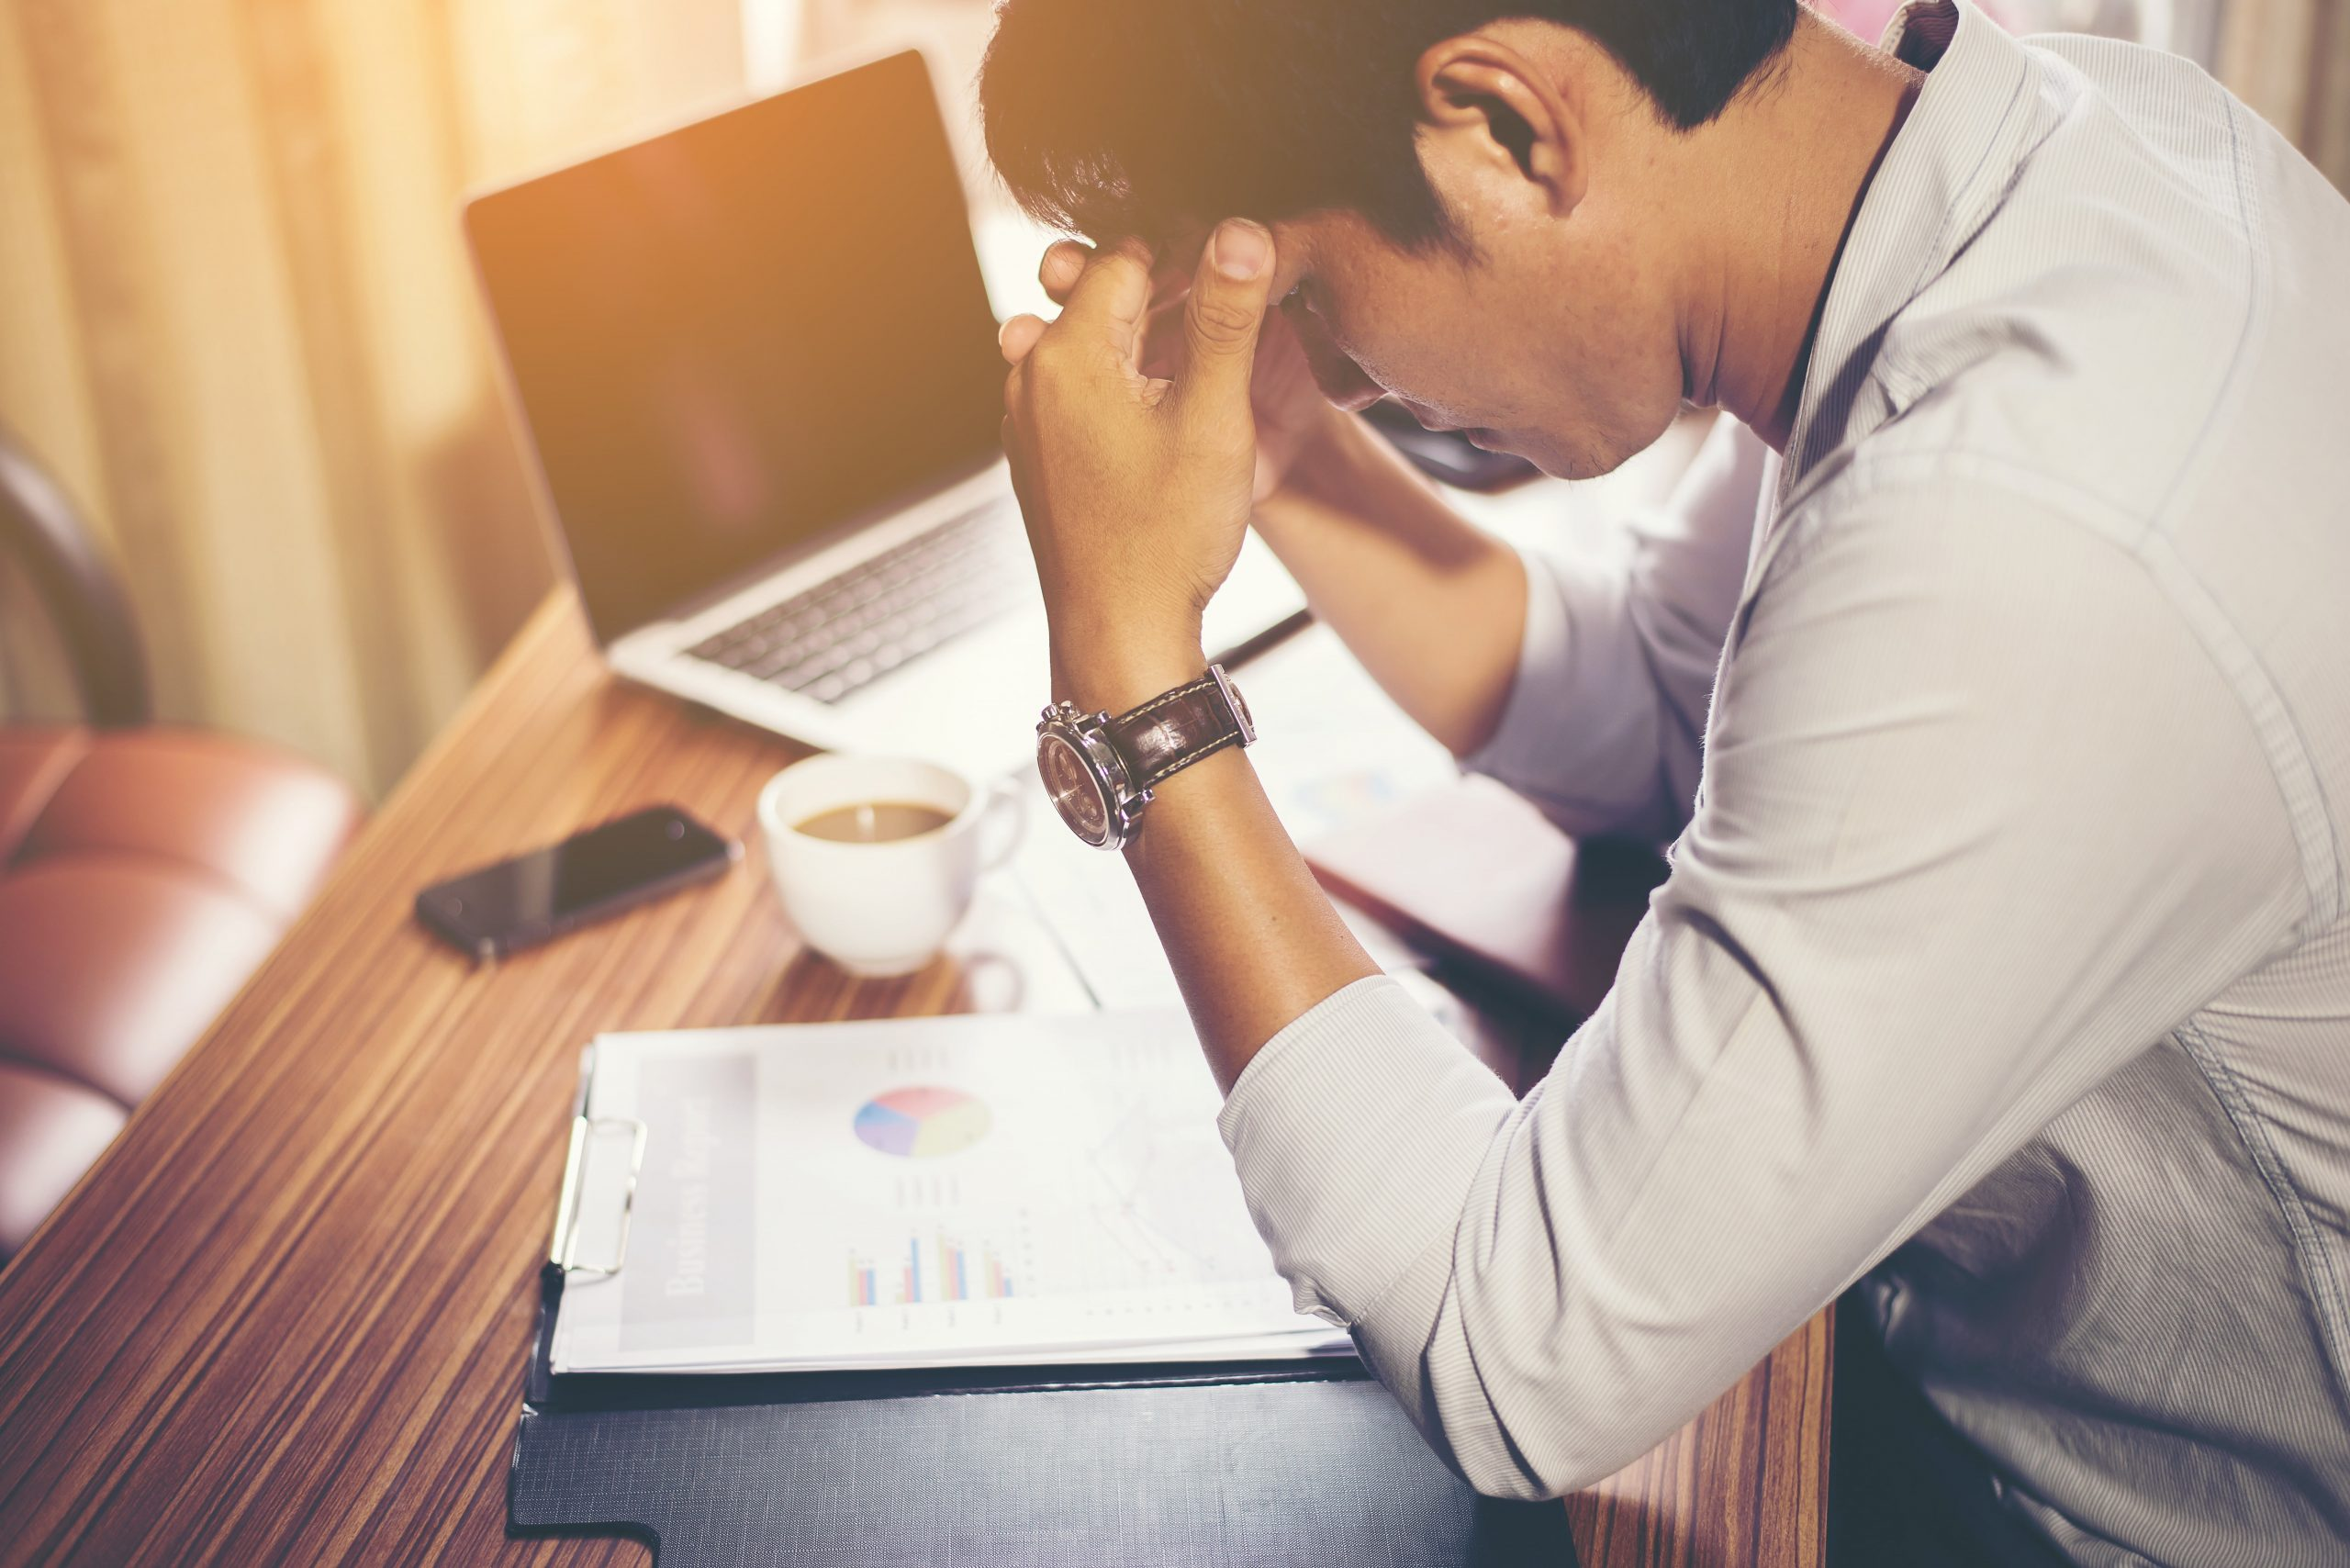 5 Signs an Employee Is Secretly Unhappy With Their Job